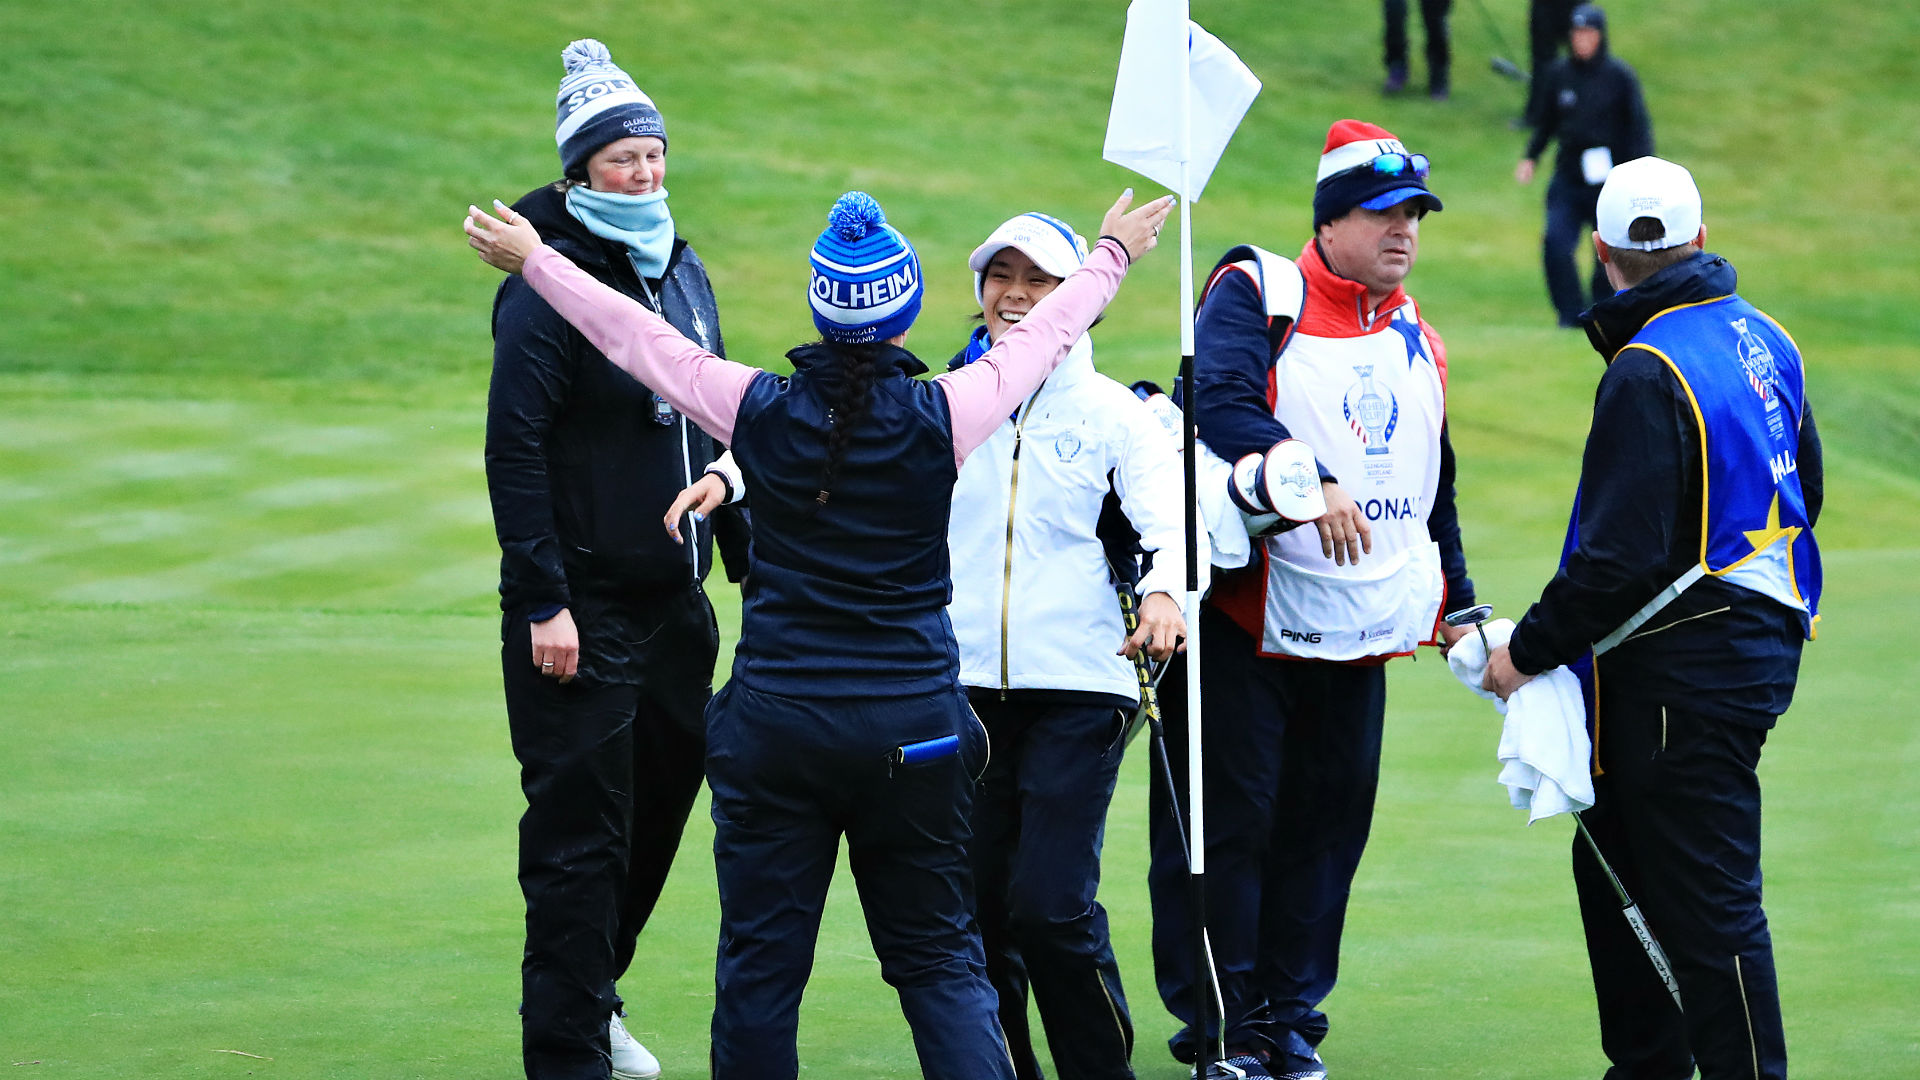 Solheim Cup tied at 8-8 heading into final day